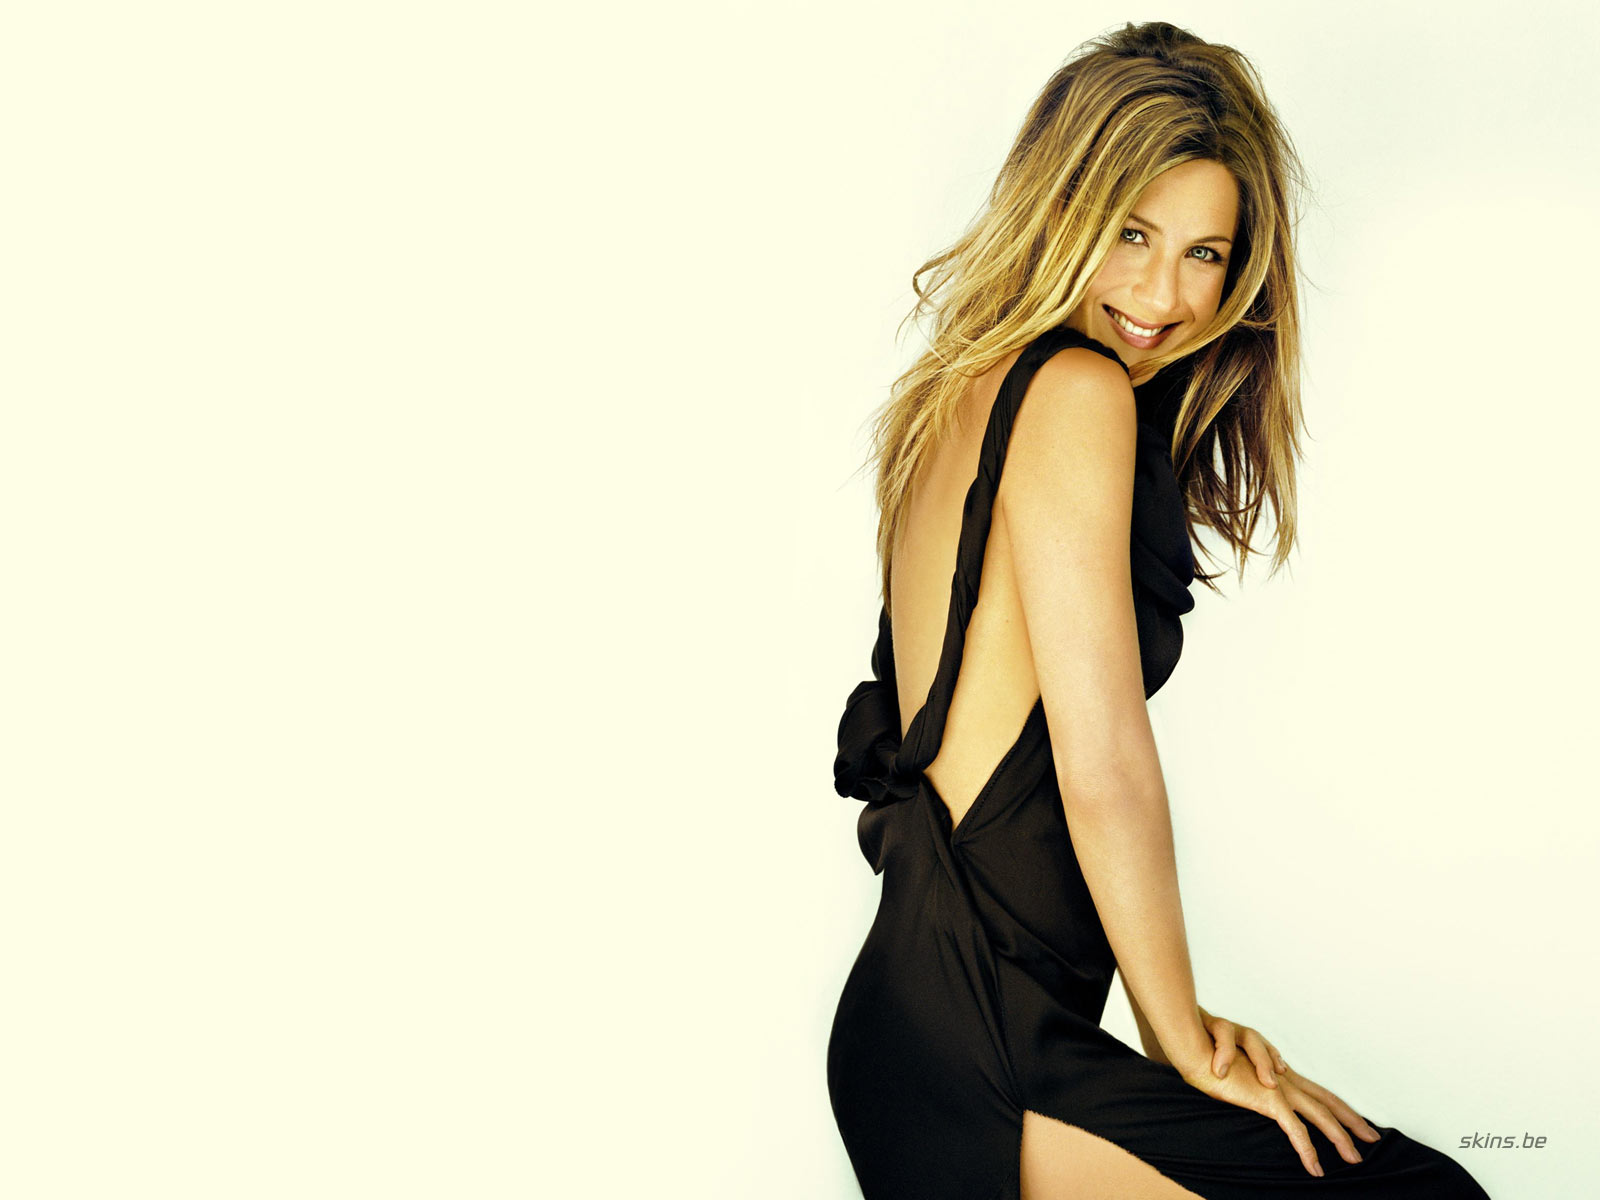 Jennifer Aniston Hot And Sexy Wallpapers - All Hd Wallpapers-8850